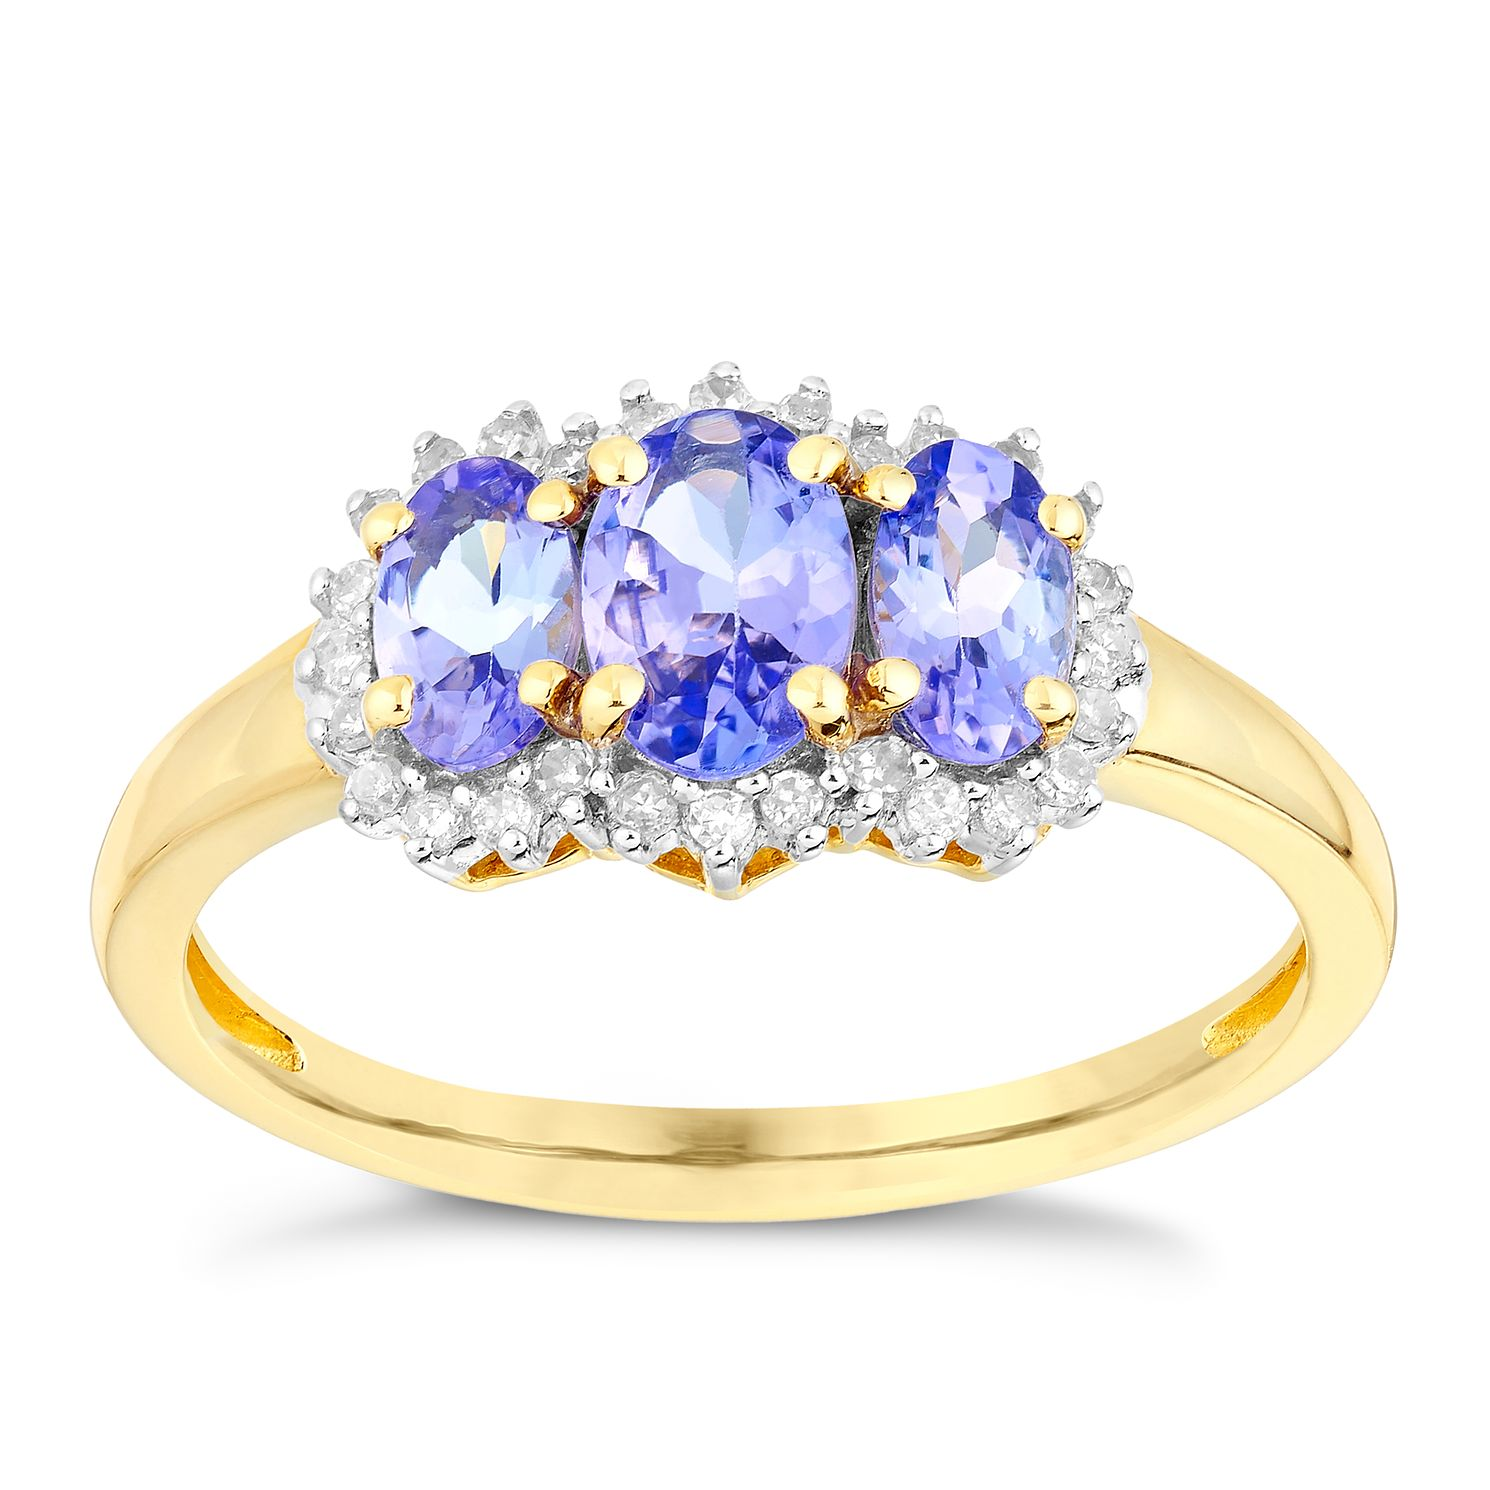 9ct Yellow Gold Three Stone Tanzanite & 0.10ct Diamond Ring - Product number 2998831